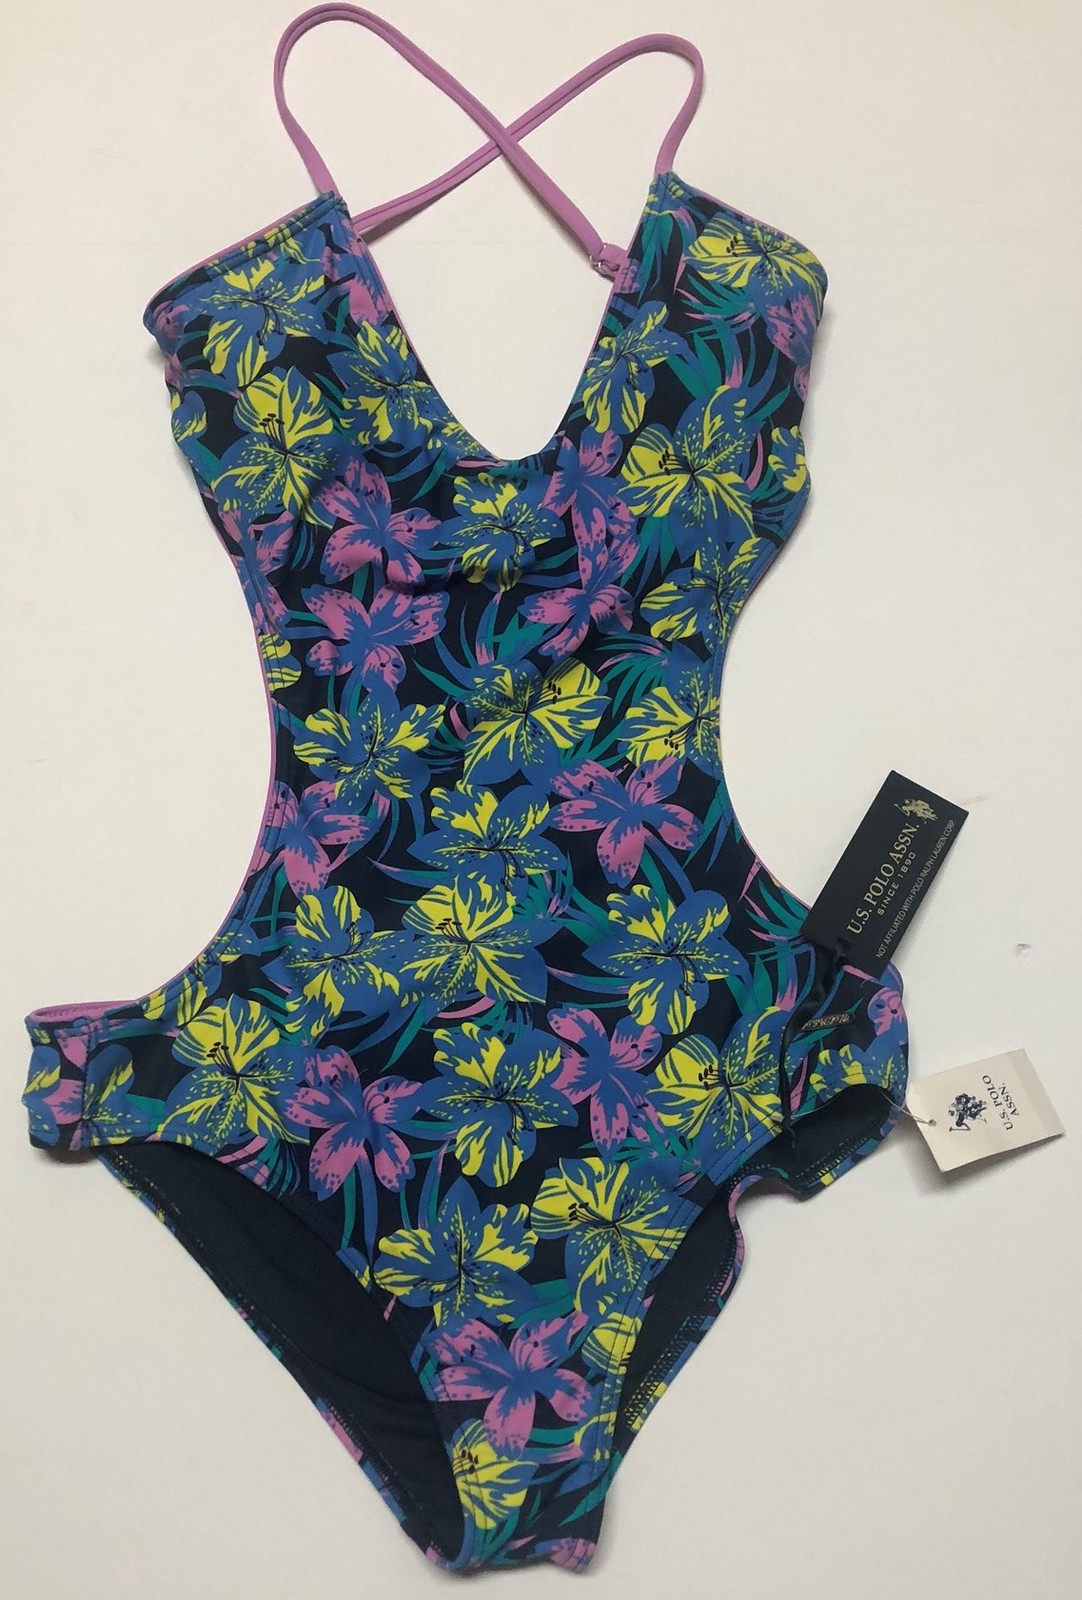 U.S. Polo One Piece Swimsuit Floral Open Back Sz M image 2